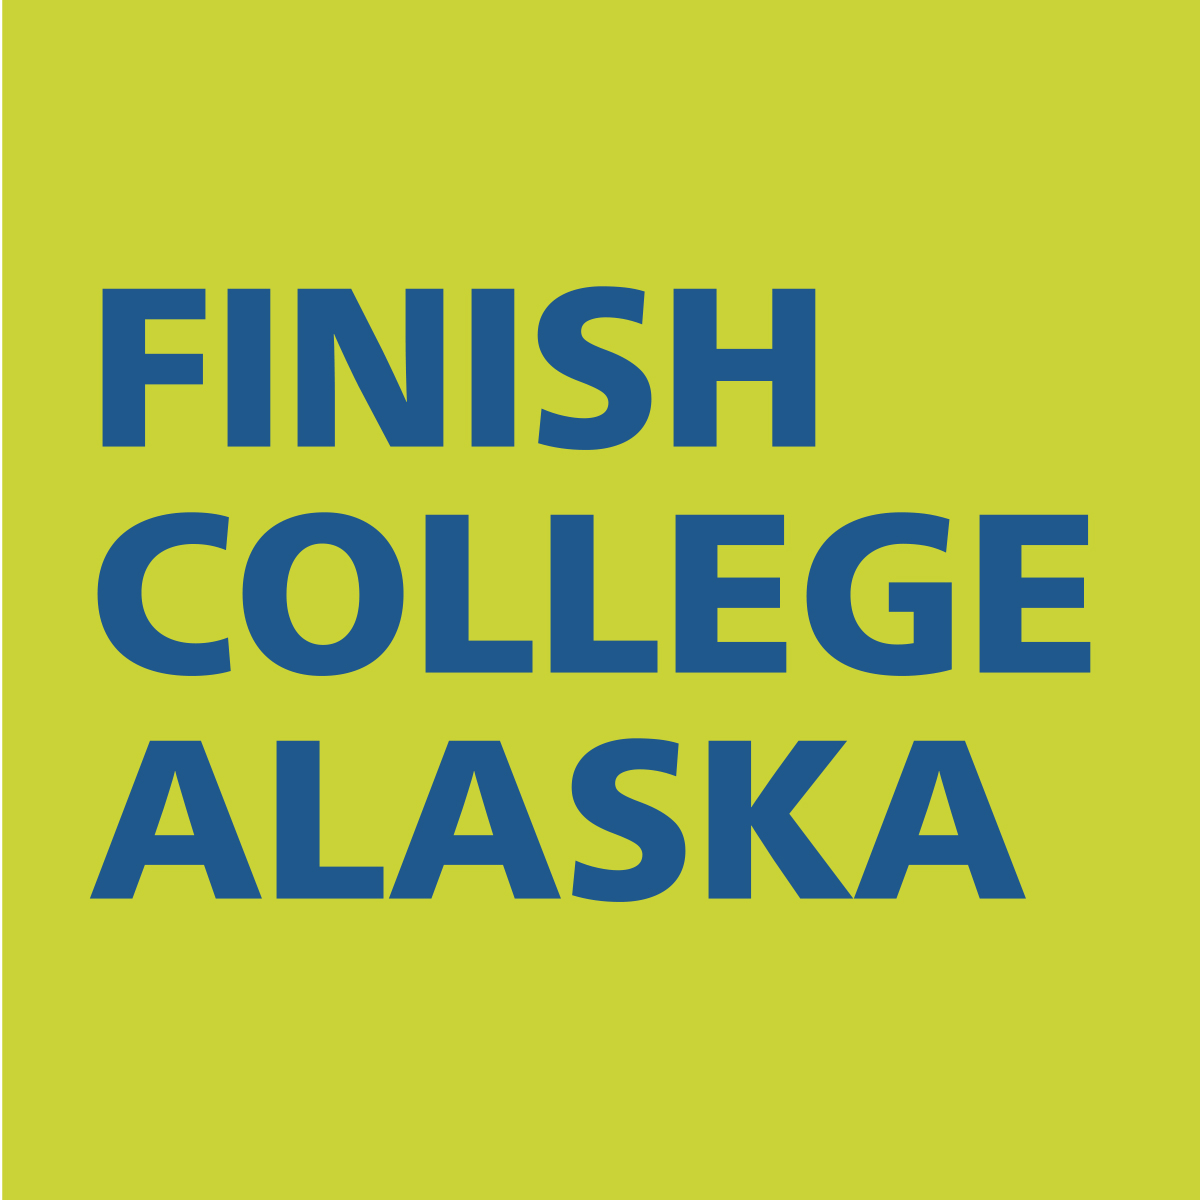 """Finish College Alaska"" thumbnail image"